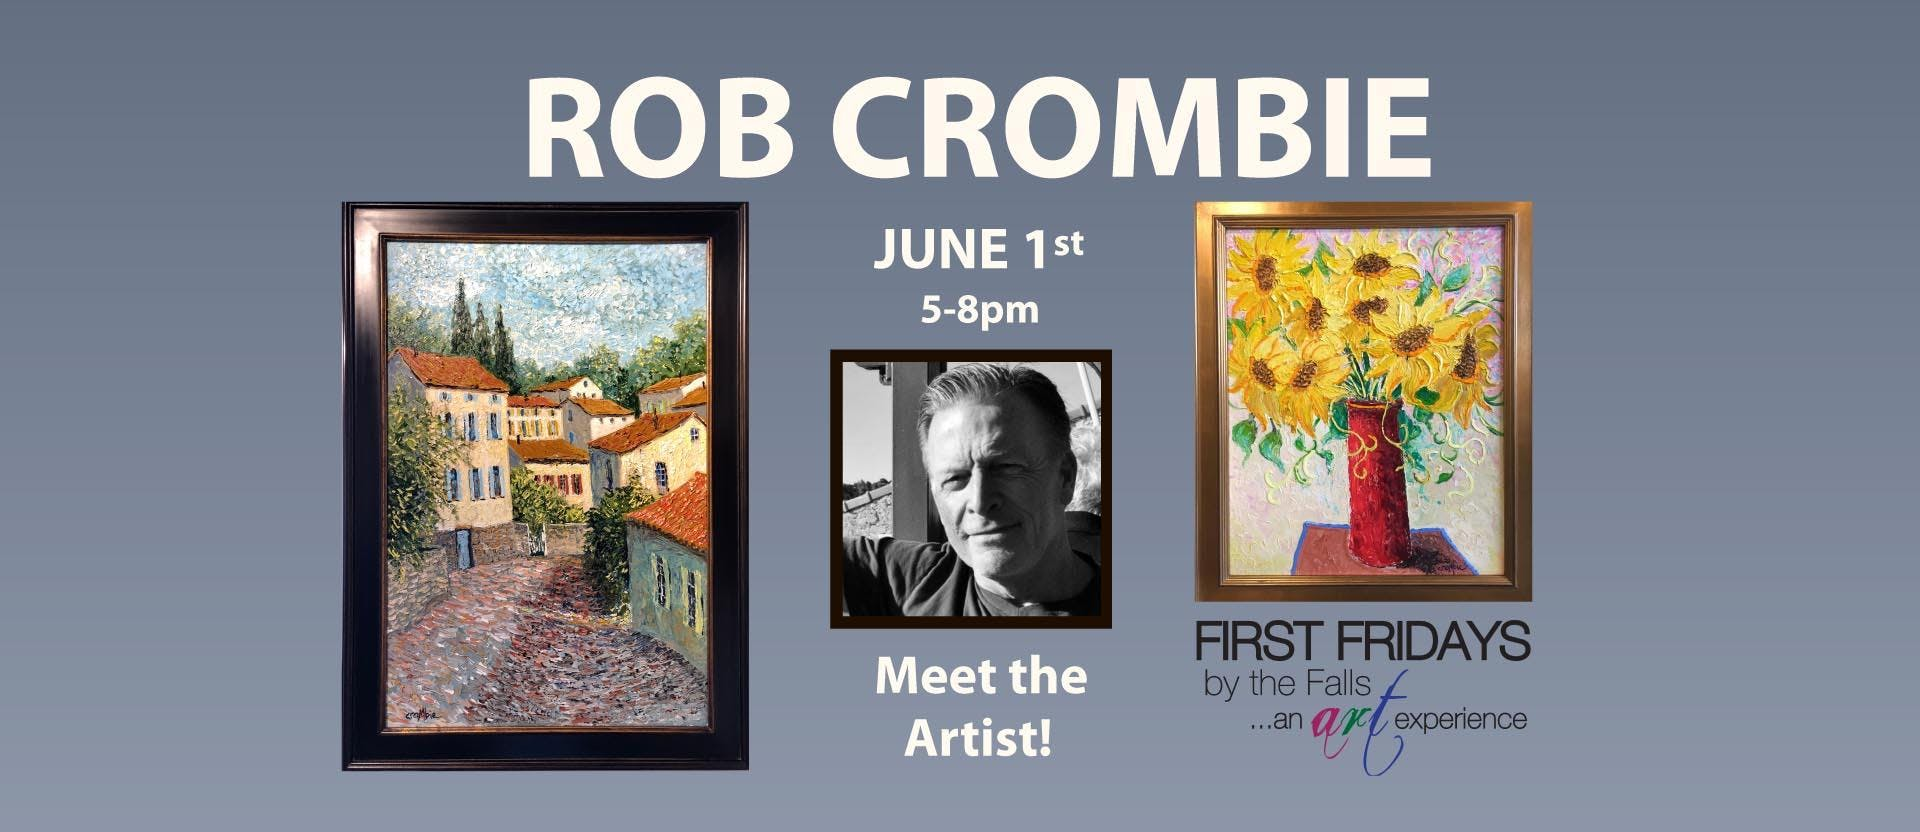 Rob Crombie Art Show - First Friday by the Fa